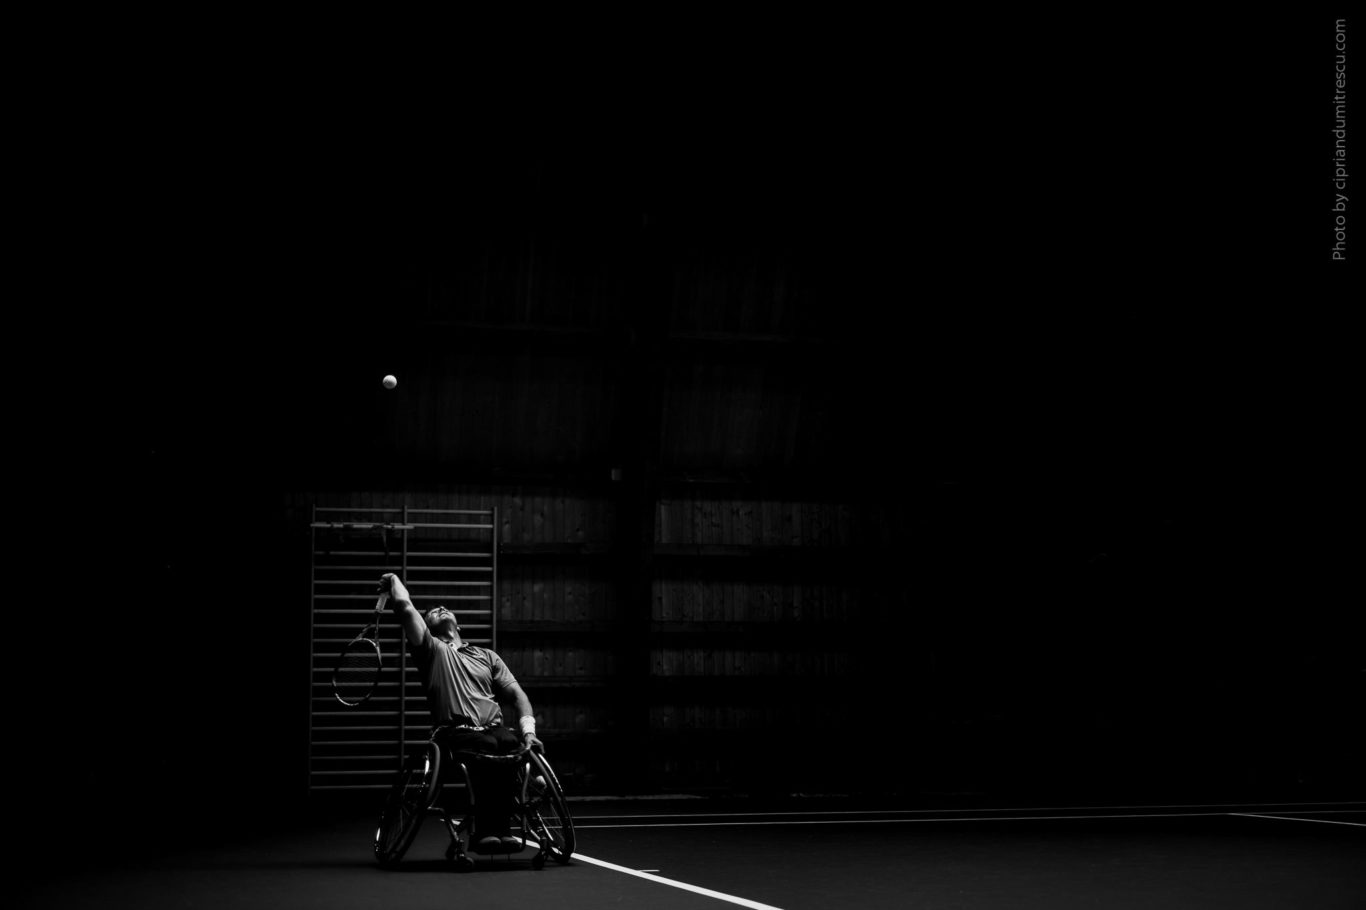 031-Bucharest-Open-Wheelchair-2016-Day-One-Photographer-Ciprian-Dumitrescu